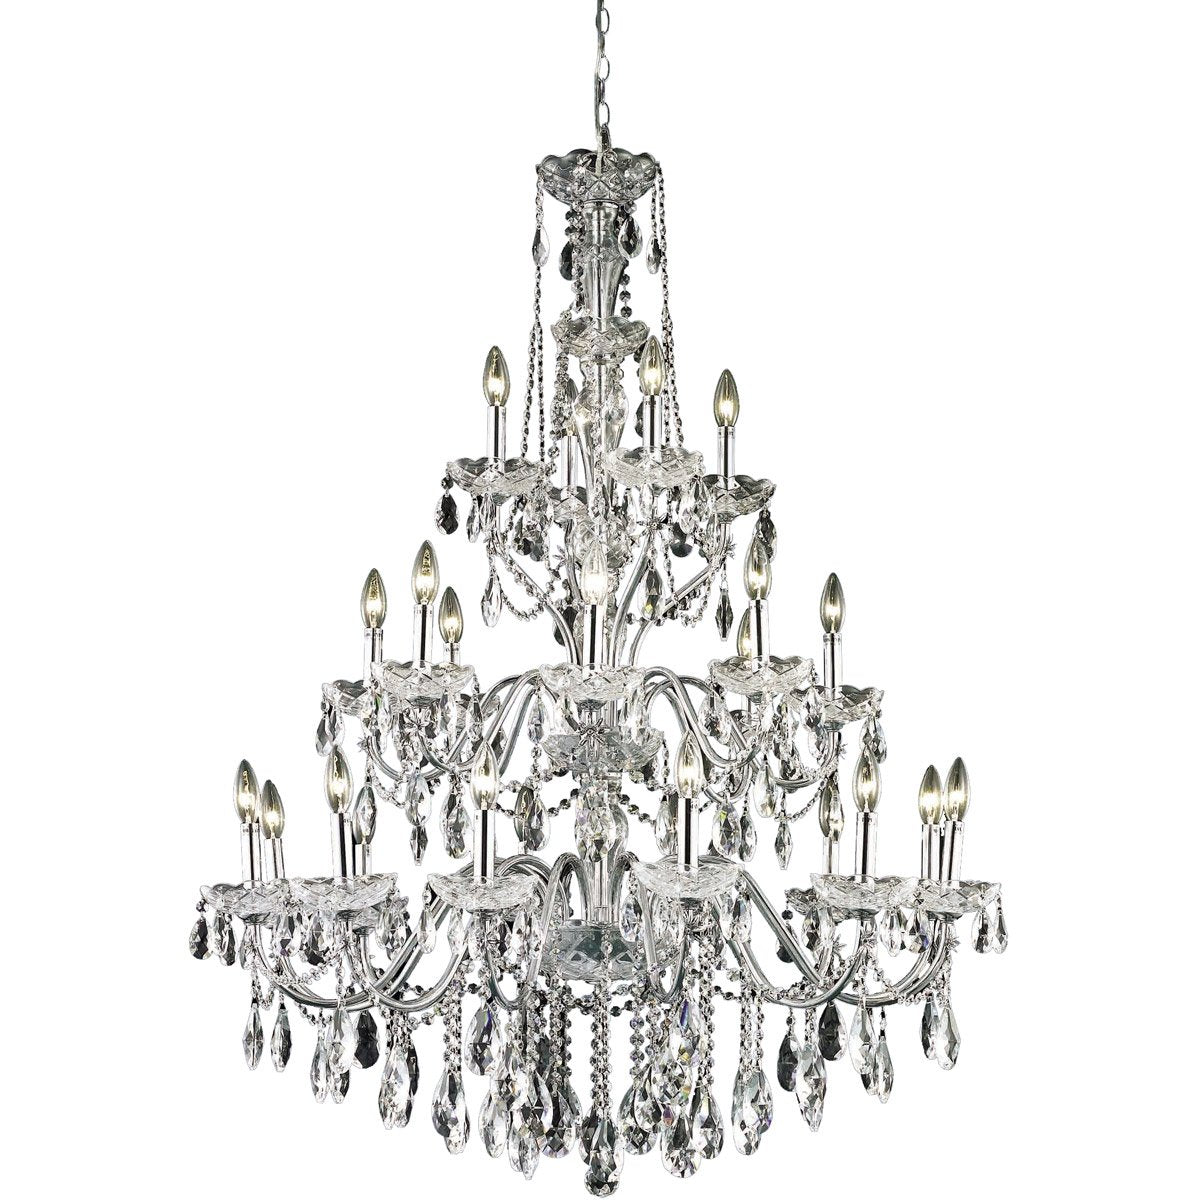 St. Francis 36 Crystal Foyer Pendant Chandelier With 24 Lights - Chrome Finish And Swarovski Elements Crystal Chandelier